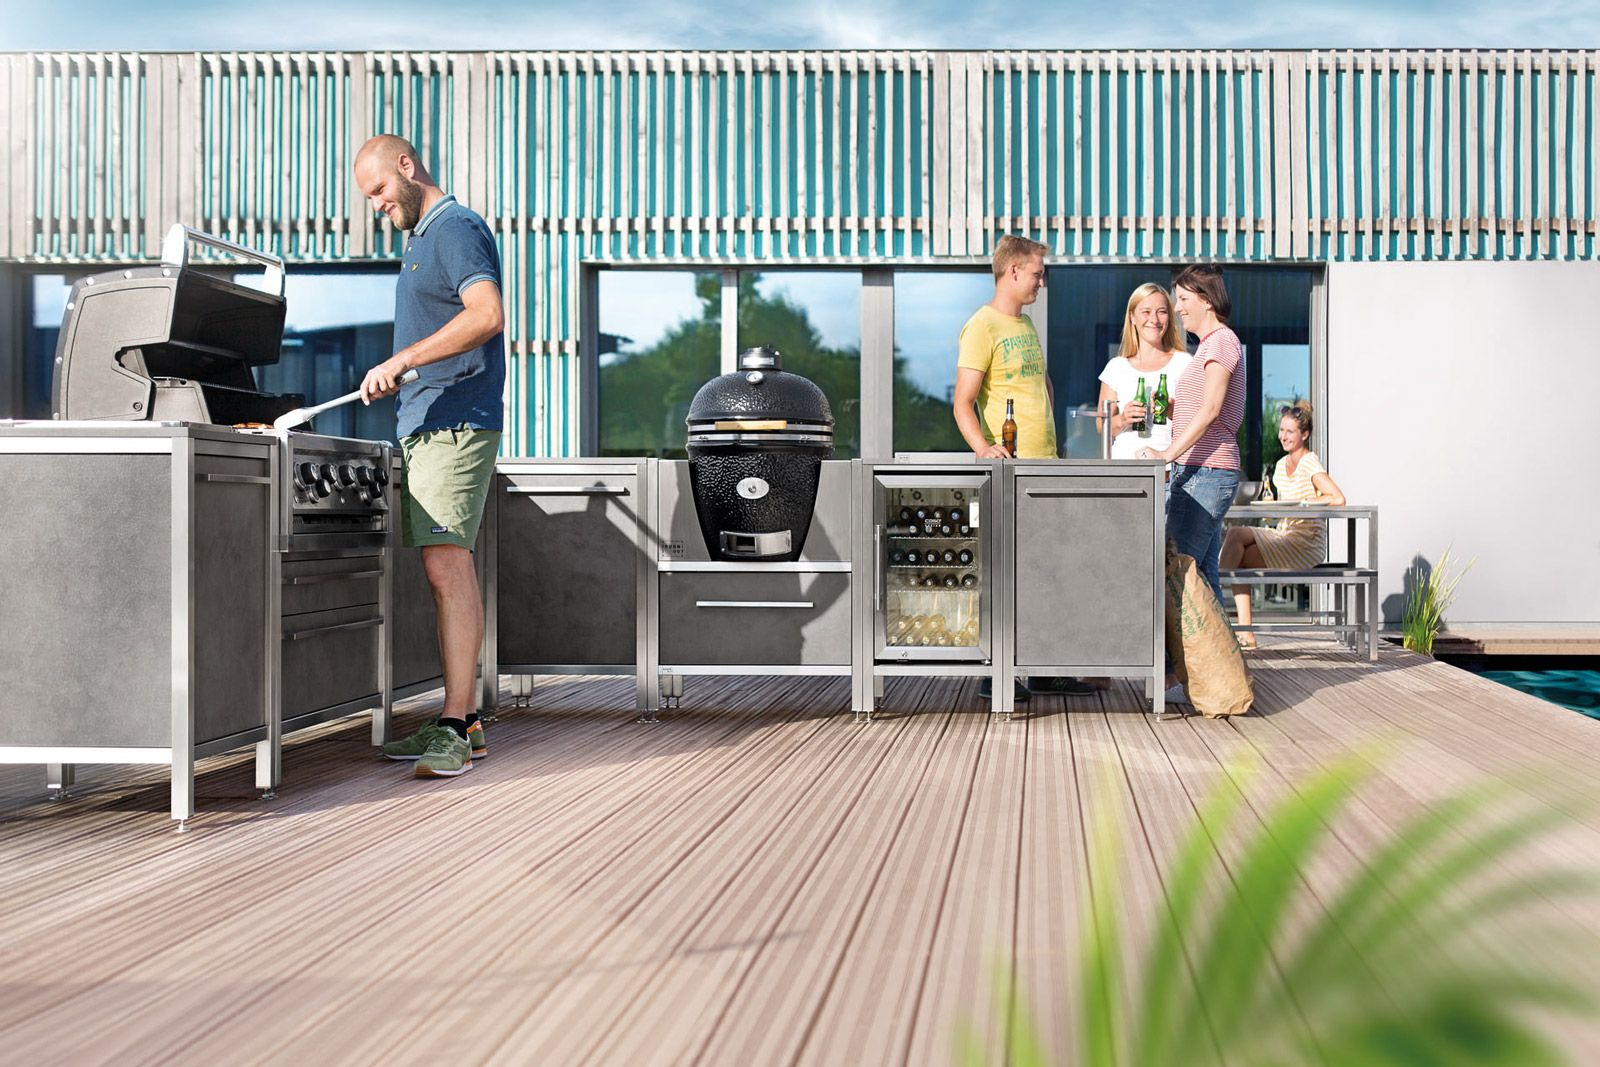 Burnout Outdoor Küche Burnout - Outdoor Kitchens